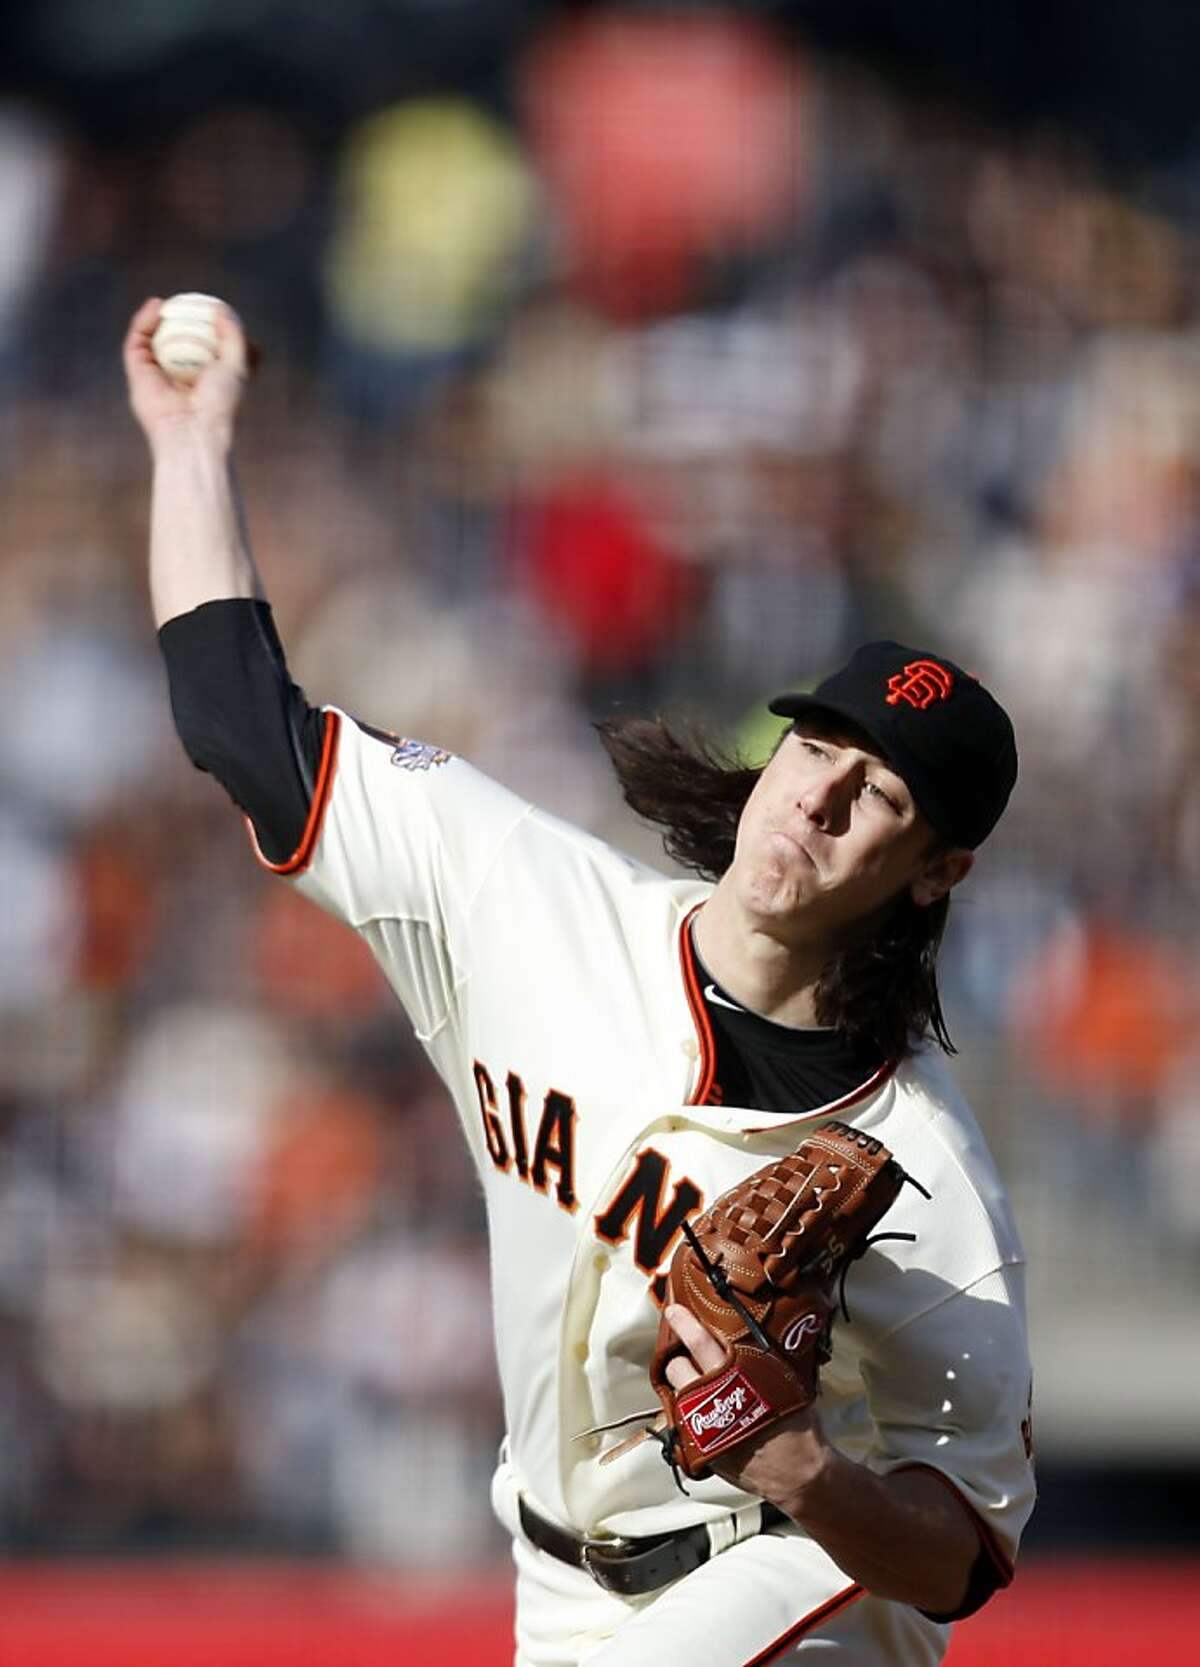 San Francisco Giants' Tim Lincecum pitches as the San Francisco Giants take on the Oakland Athletics at AT&T Park in San Francisco, Calif., on Saturday, May 21, 2011.